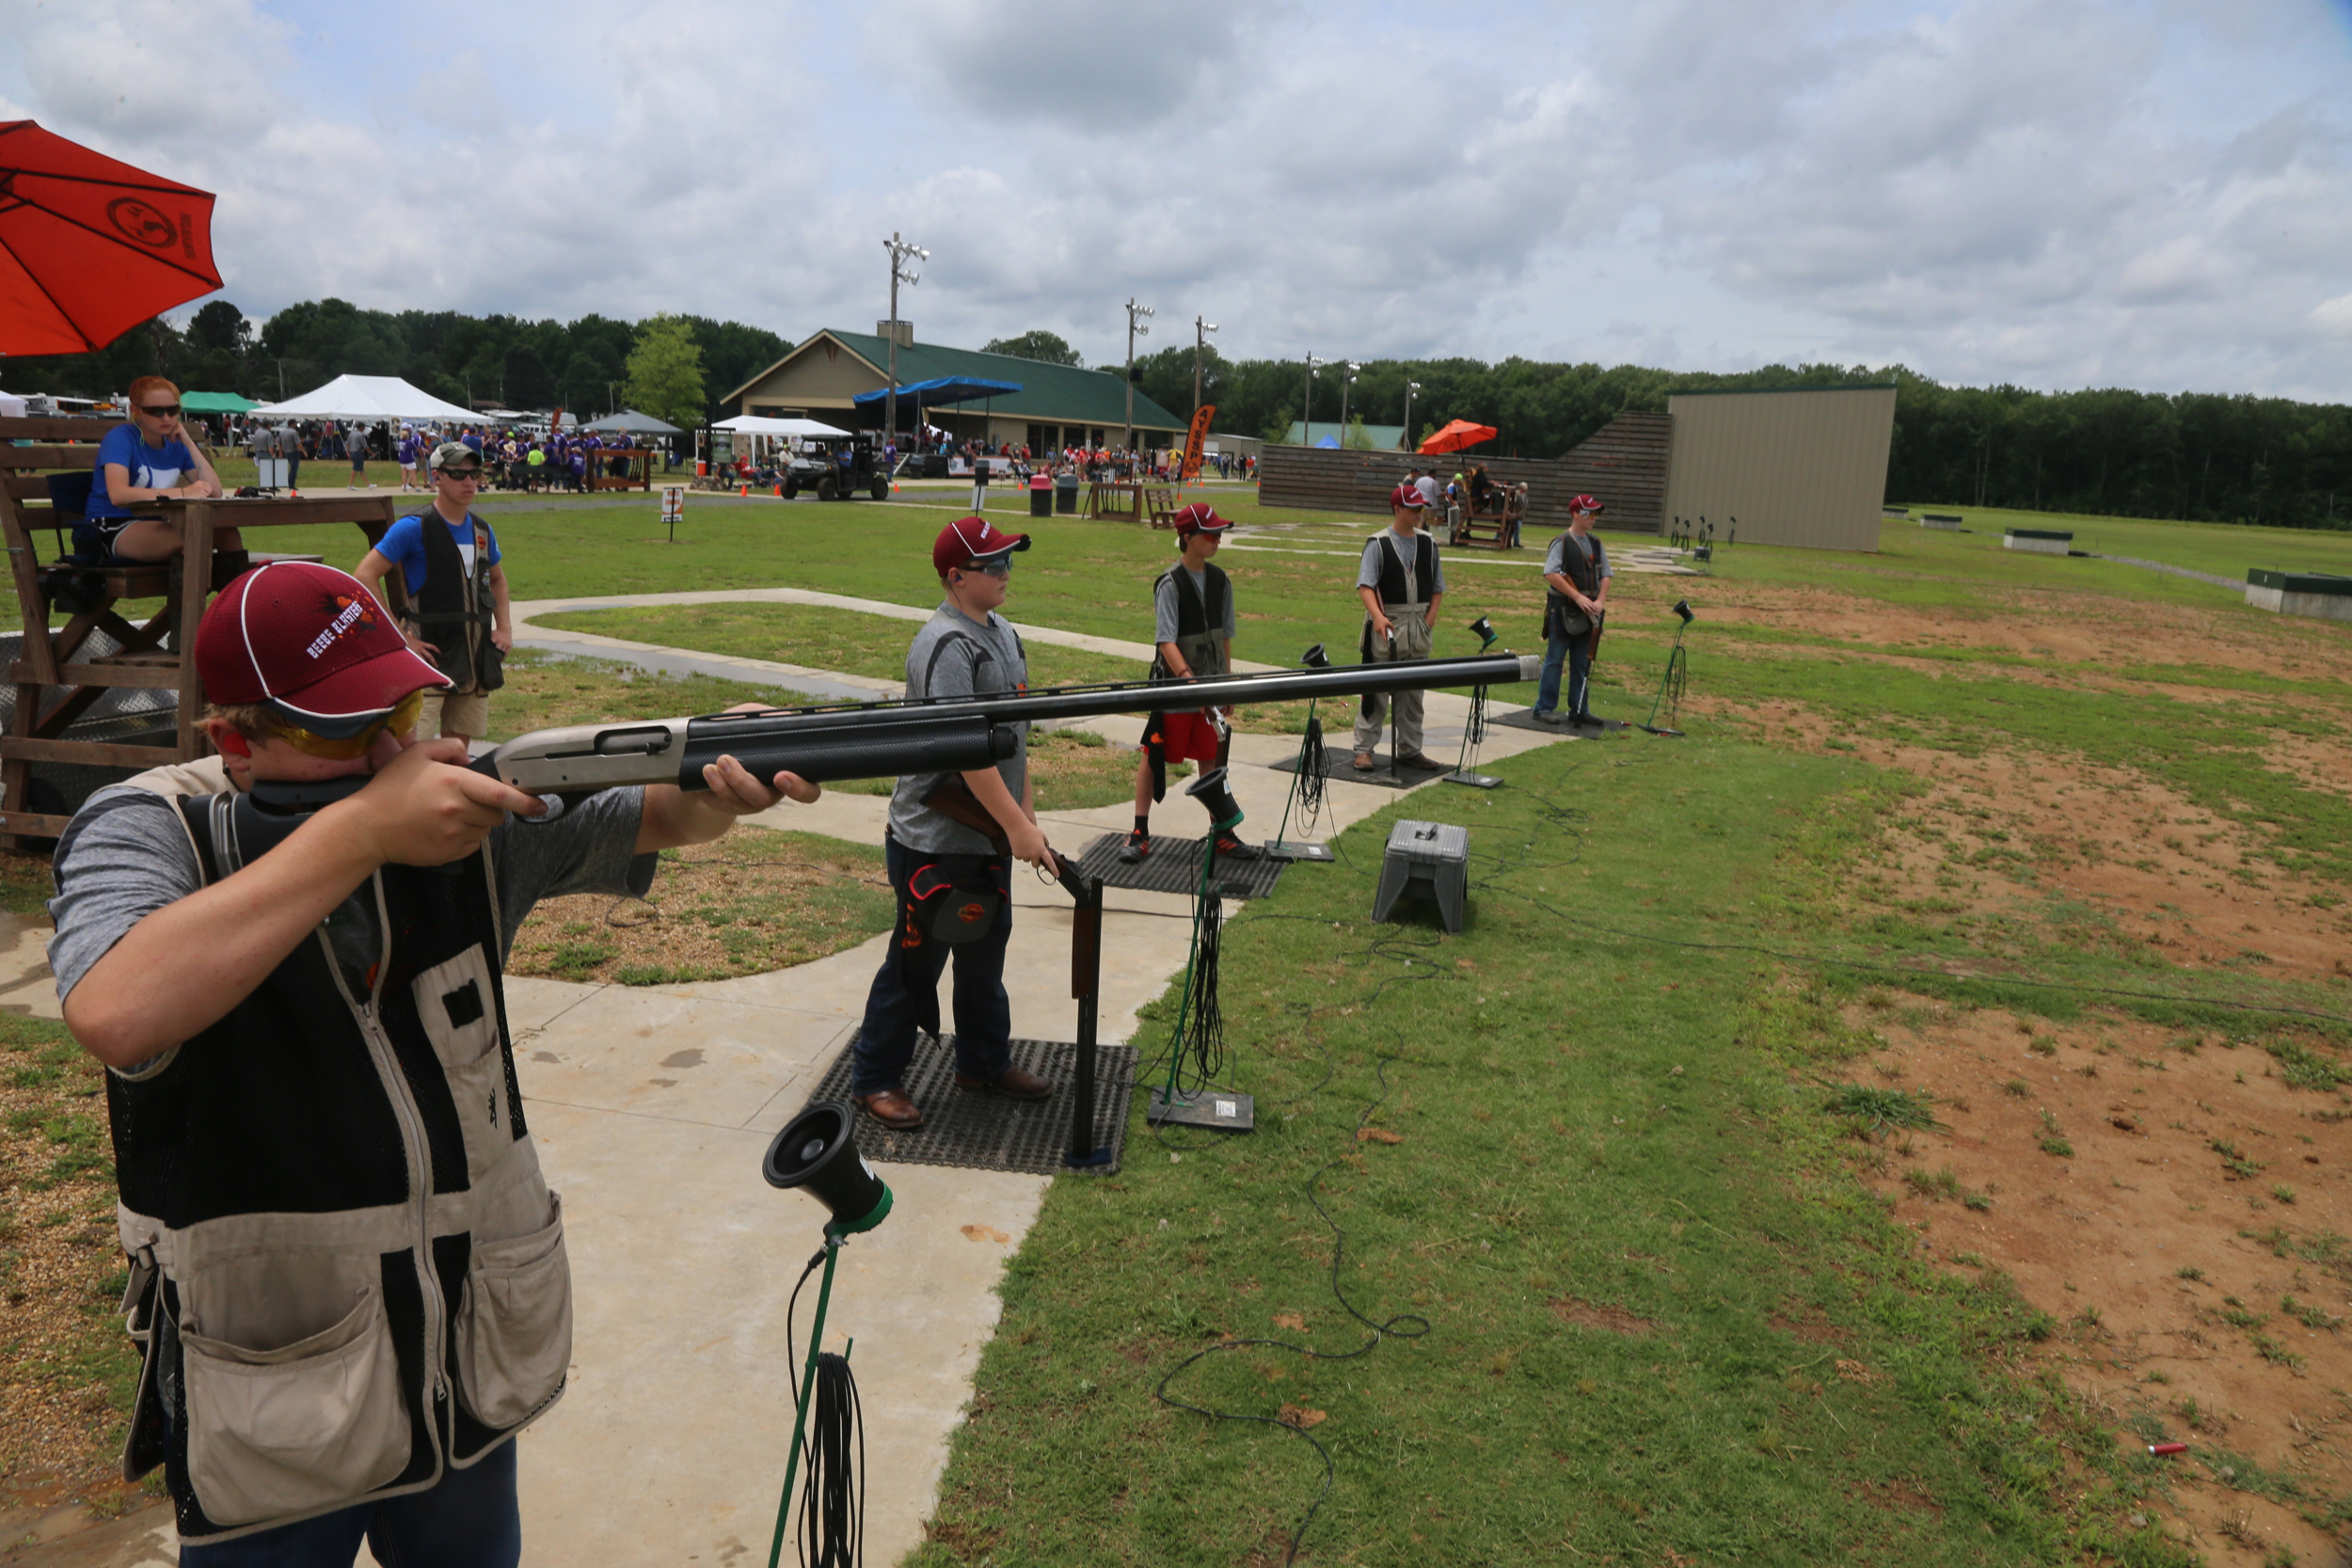 Youth shooting sports are just one way AGFF is attracting the next generation into the outdoors.